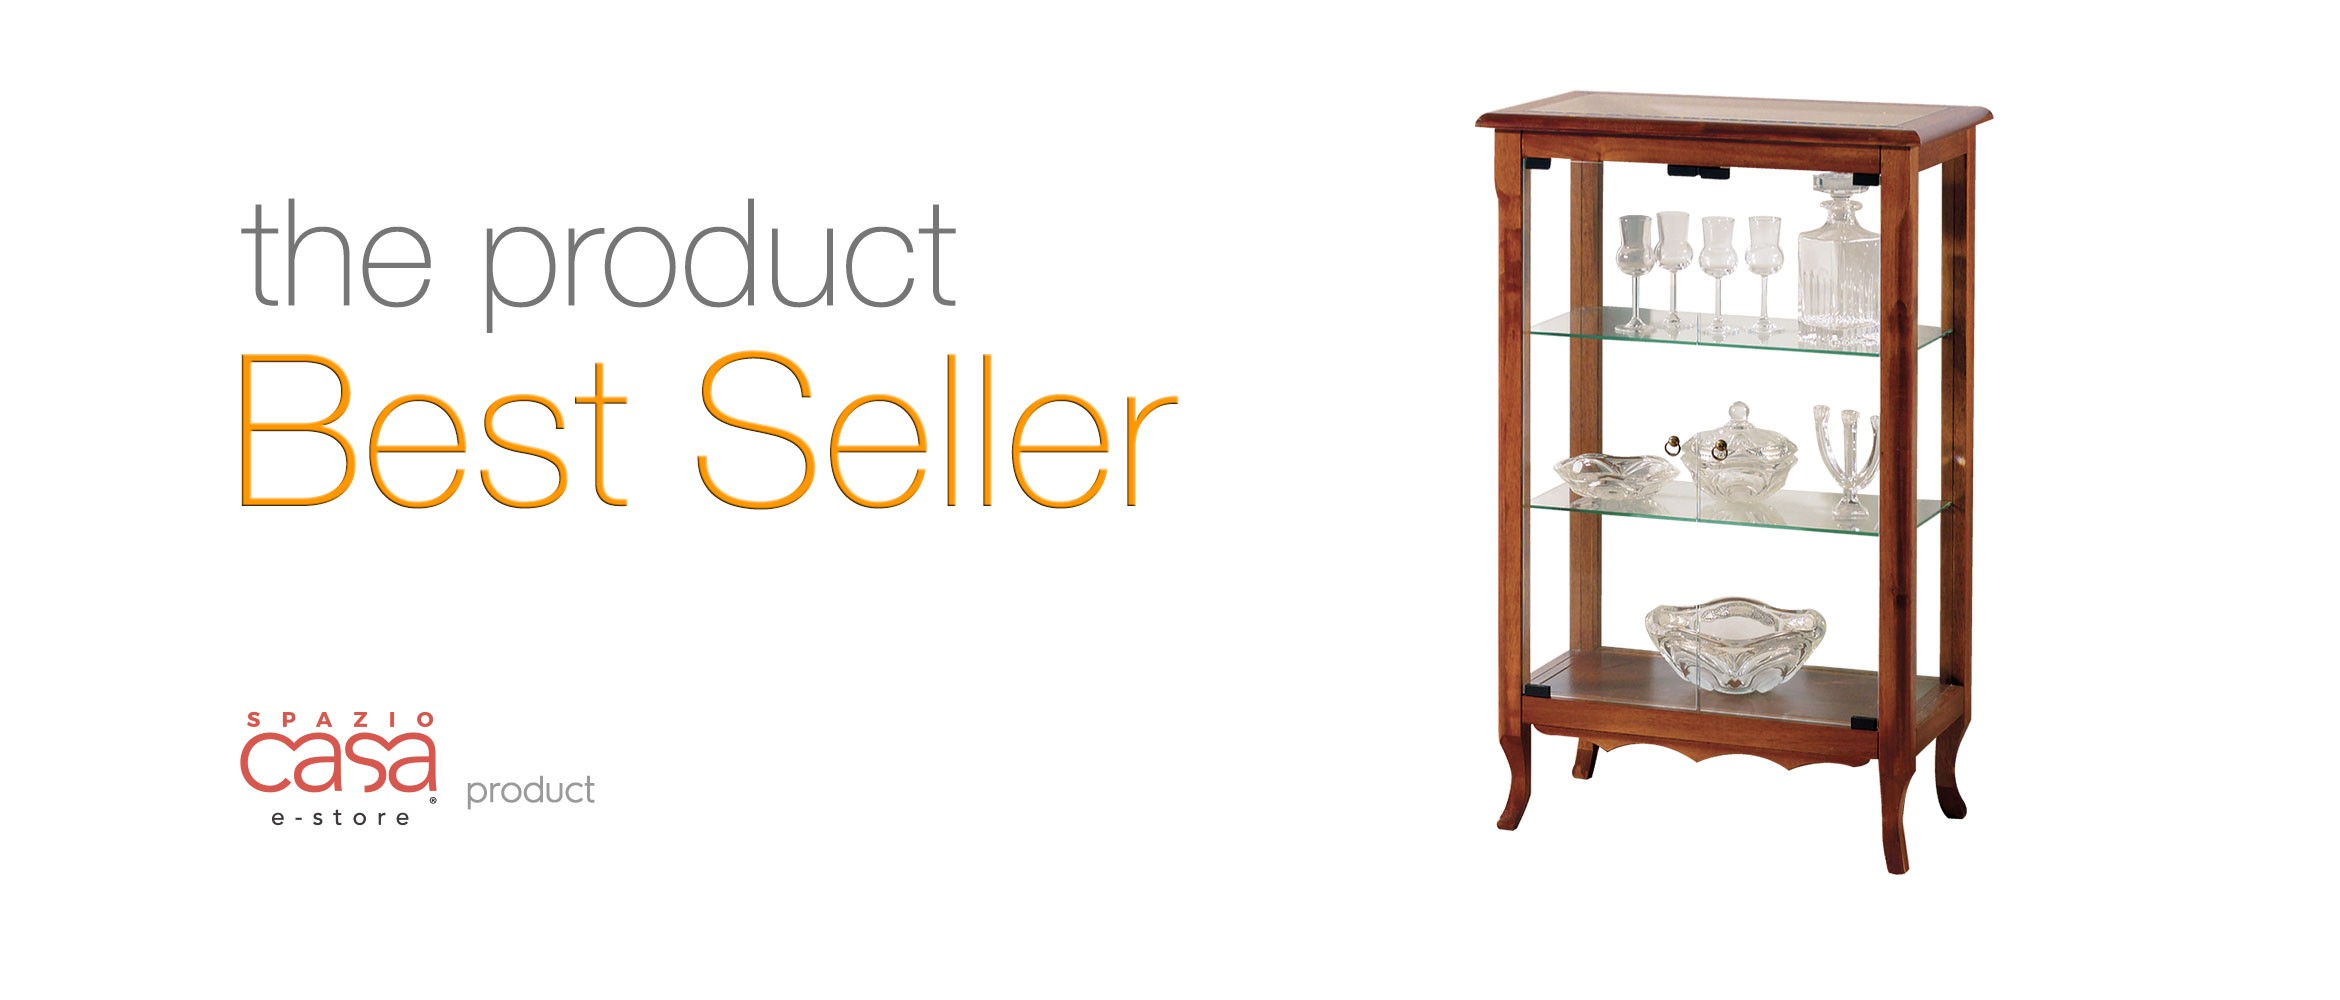 BEST SELLER - Product SPAZIO CASA